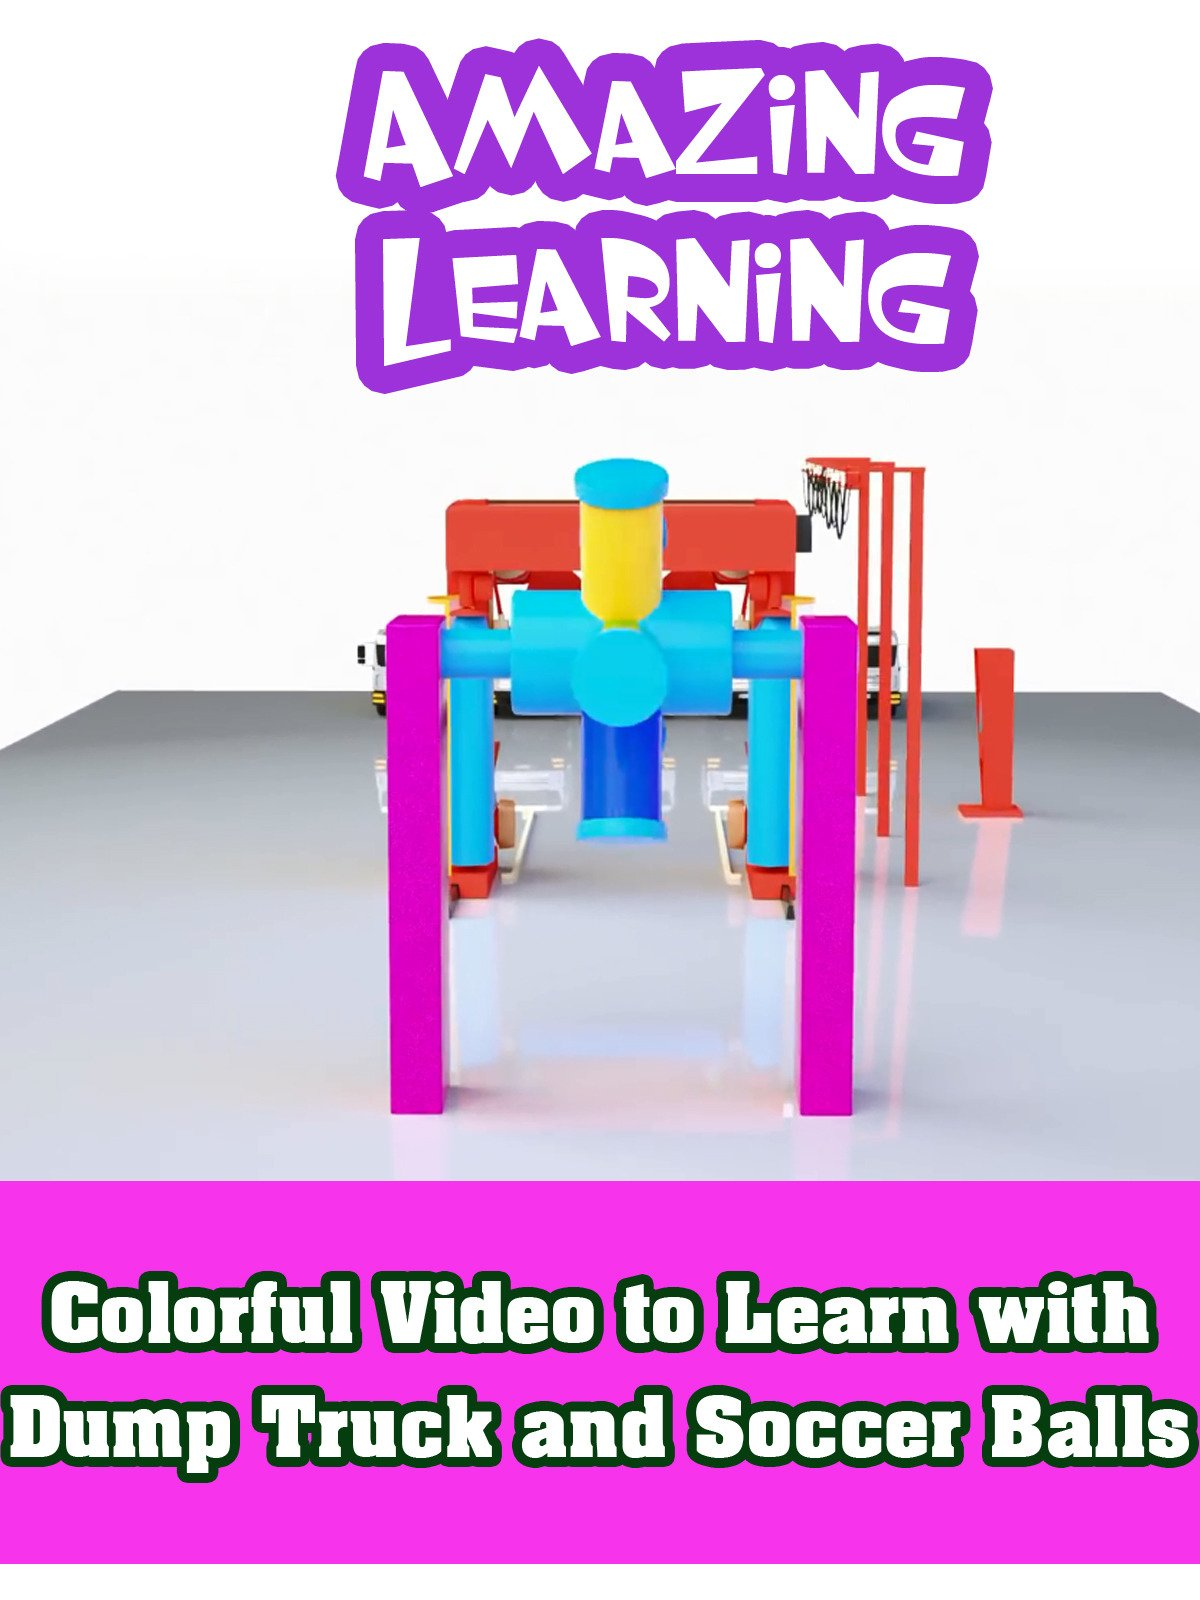 Colorful Video to Learn with Dump Truck and Soccer Balls